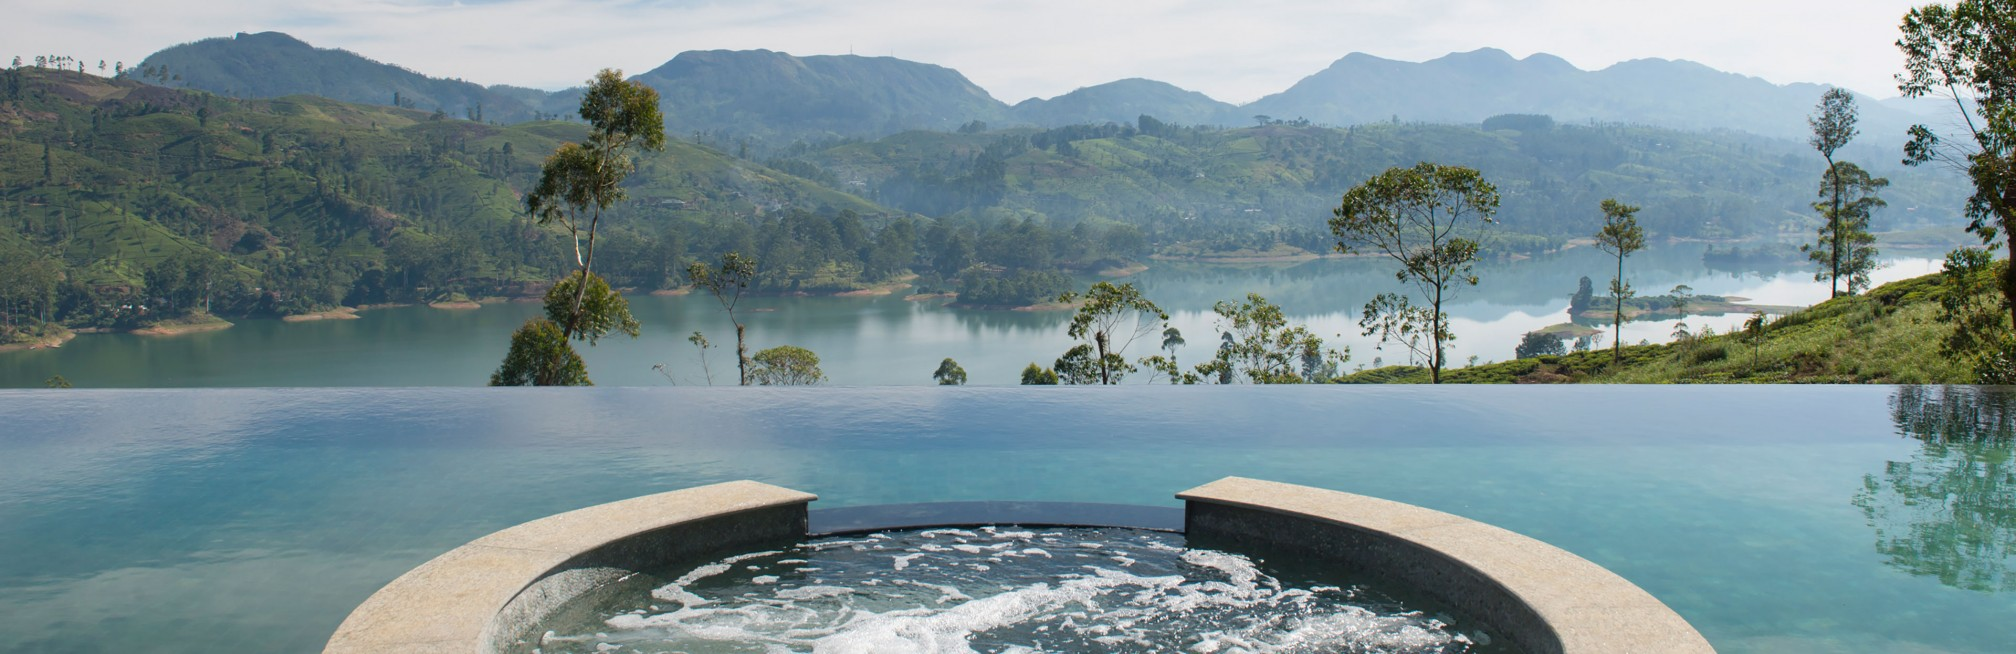 Adventures in Sri Lanka: bespoke itineraries and boutique stays